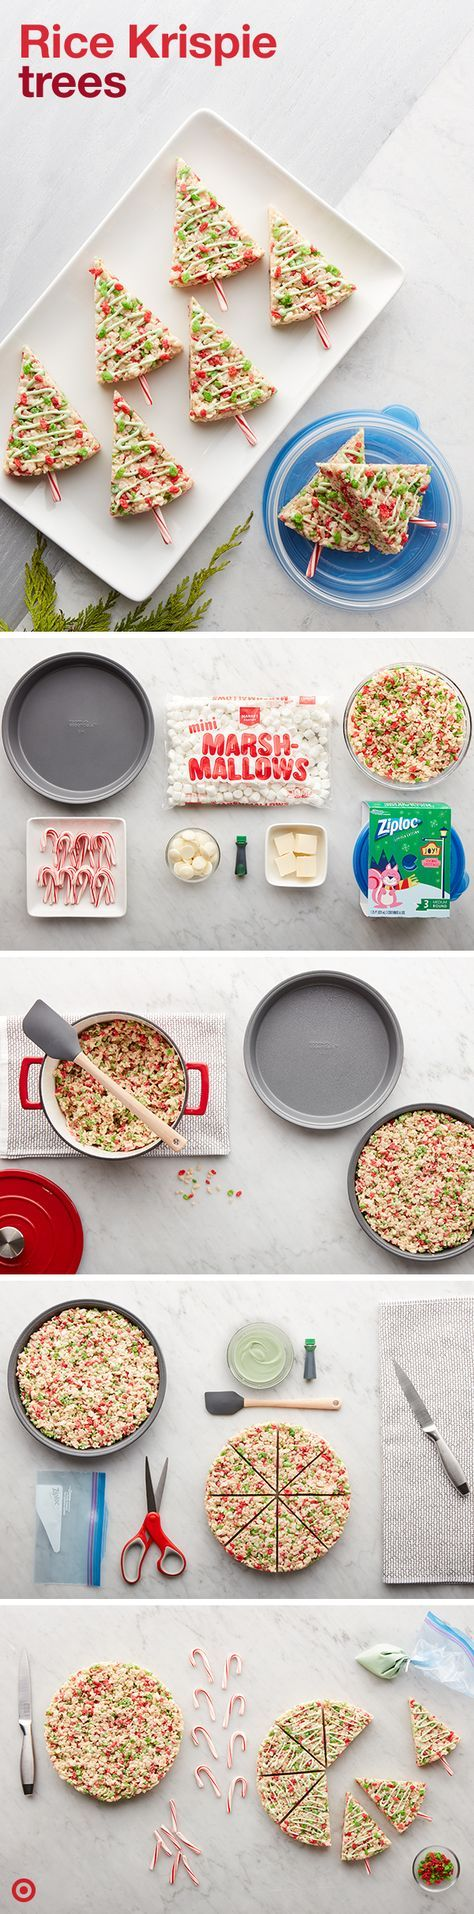 Easy as one, two, tree. Put a festive twist on everyone's favorite Rice Krispie and marshmallow bar. Trim your Tree Treats with melted chocolate, a drop (or two) of food coloring, candy canes, pretzel sticks and of course—sprinkles. Drizzle to your heart's desire using a Ziploc brand bag, and serve in wedges. Last step? Gather your loved ones and savor every crispy bite.